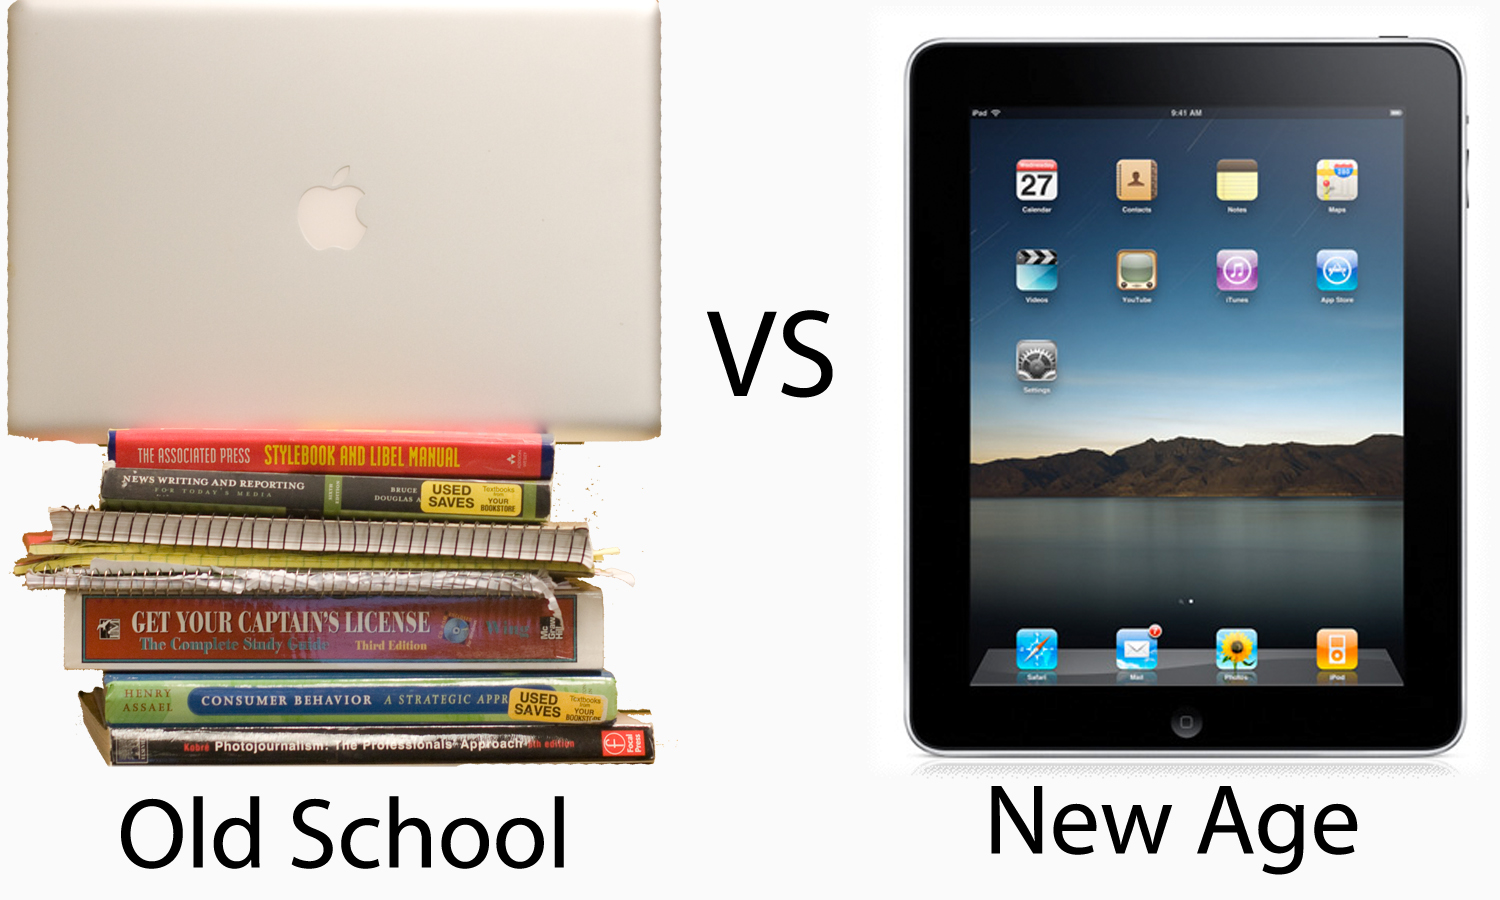 What are some good reasons to bring iPads to school?